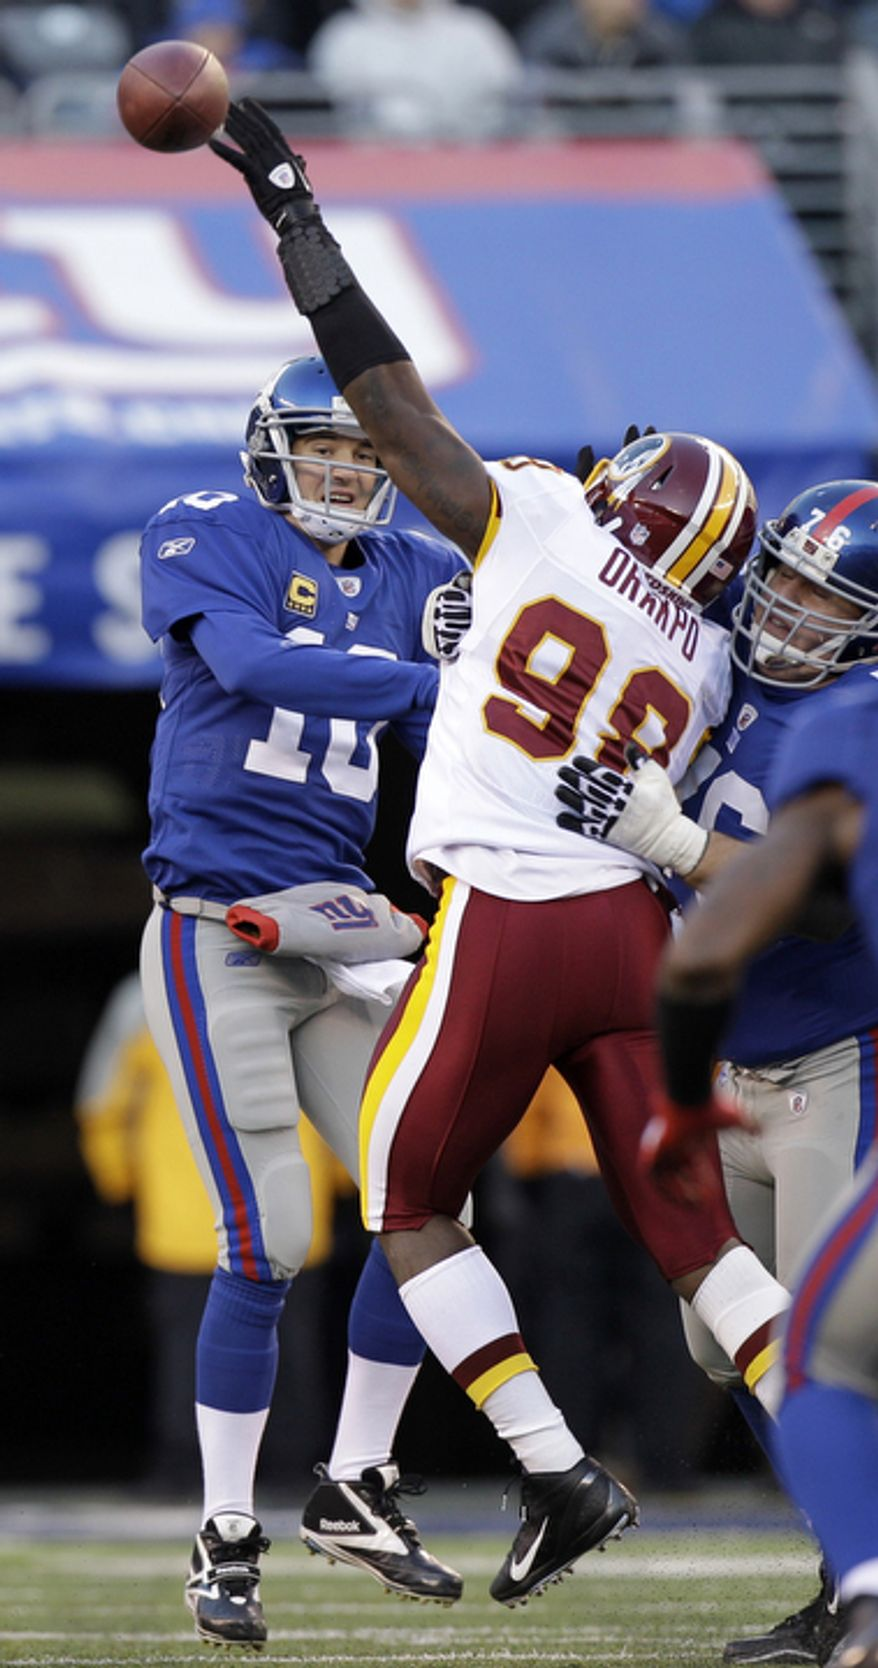 Washington Redskins' Brian Orakpo, right, tries to get a hand on a pass from New York Giants' Eli Manning during the third quarter. (AP Photo/Kathy Willens)